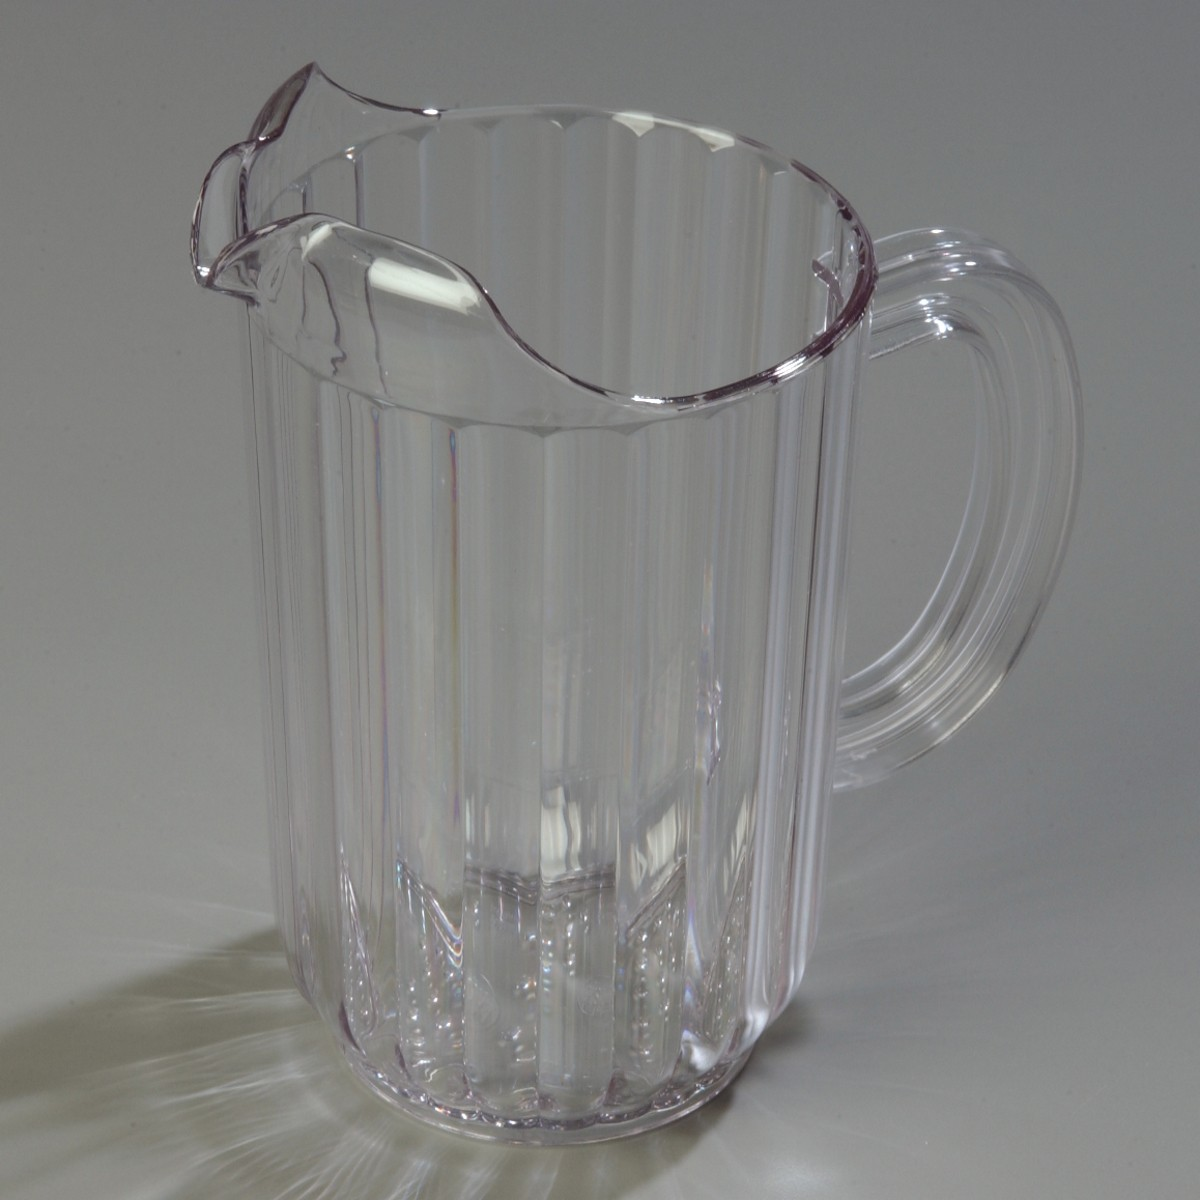 Carlisle 5538-07 48 oz. Pitcher